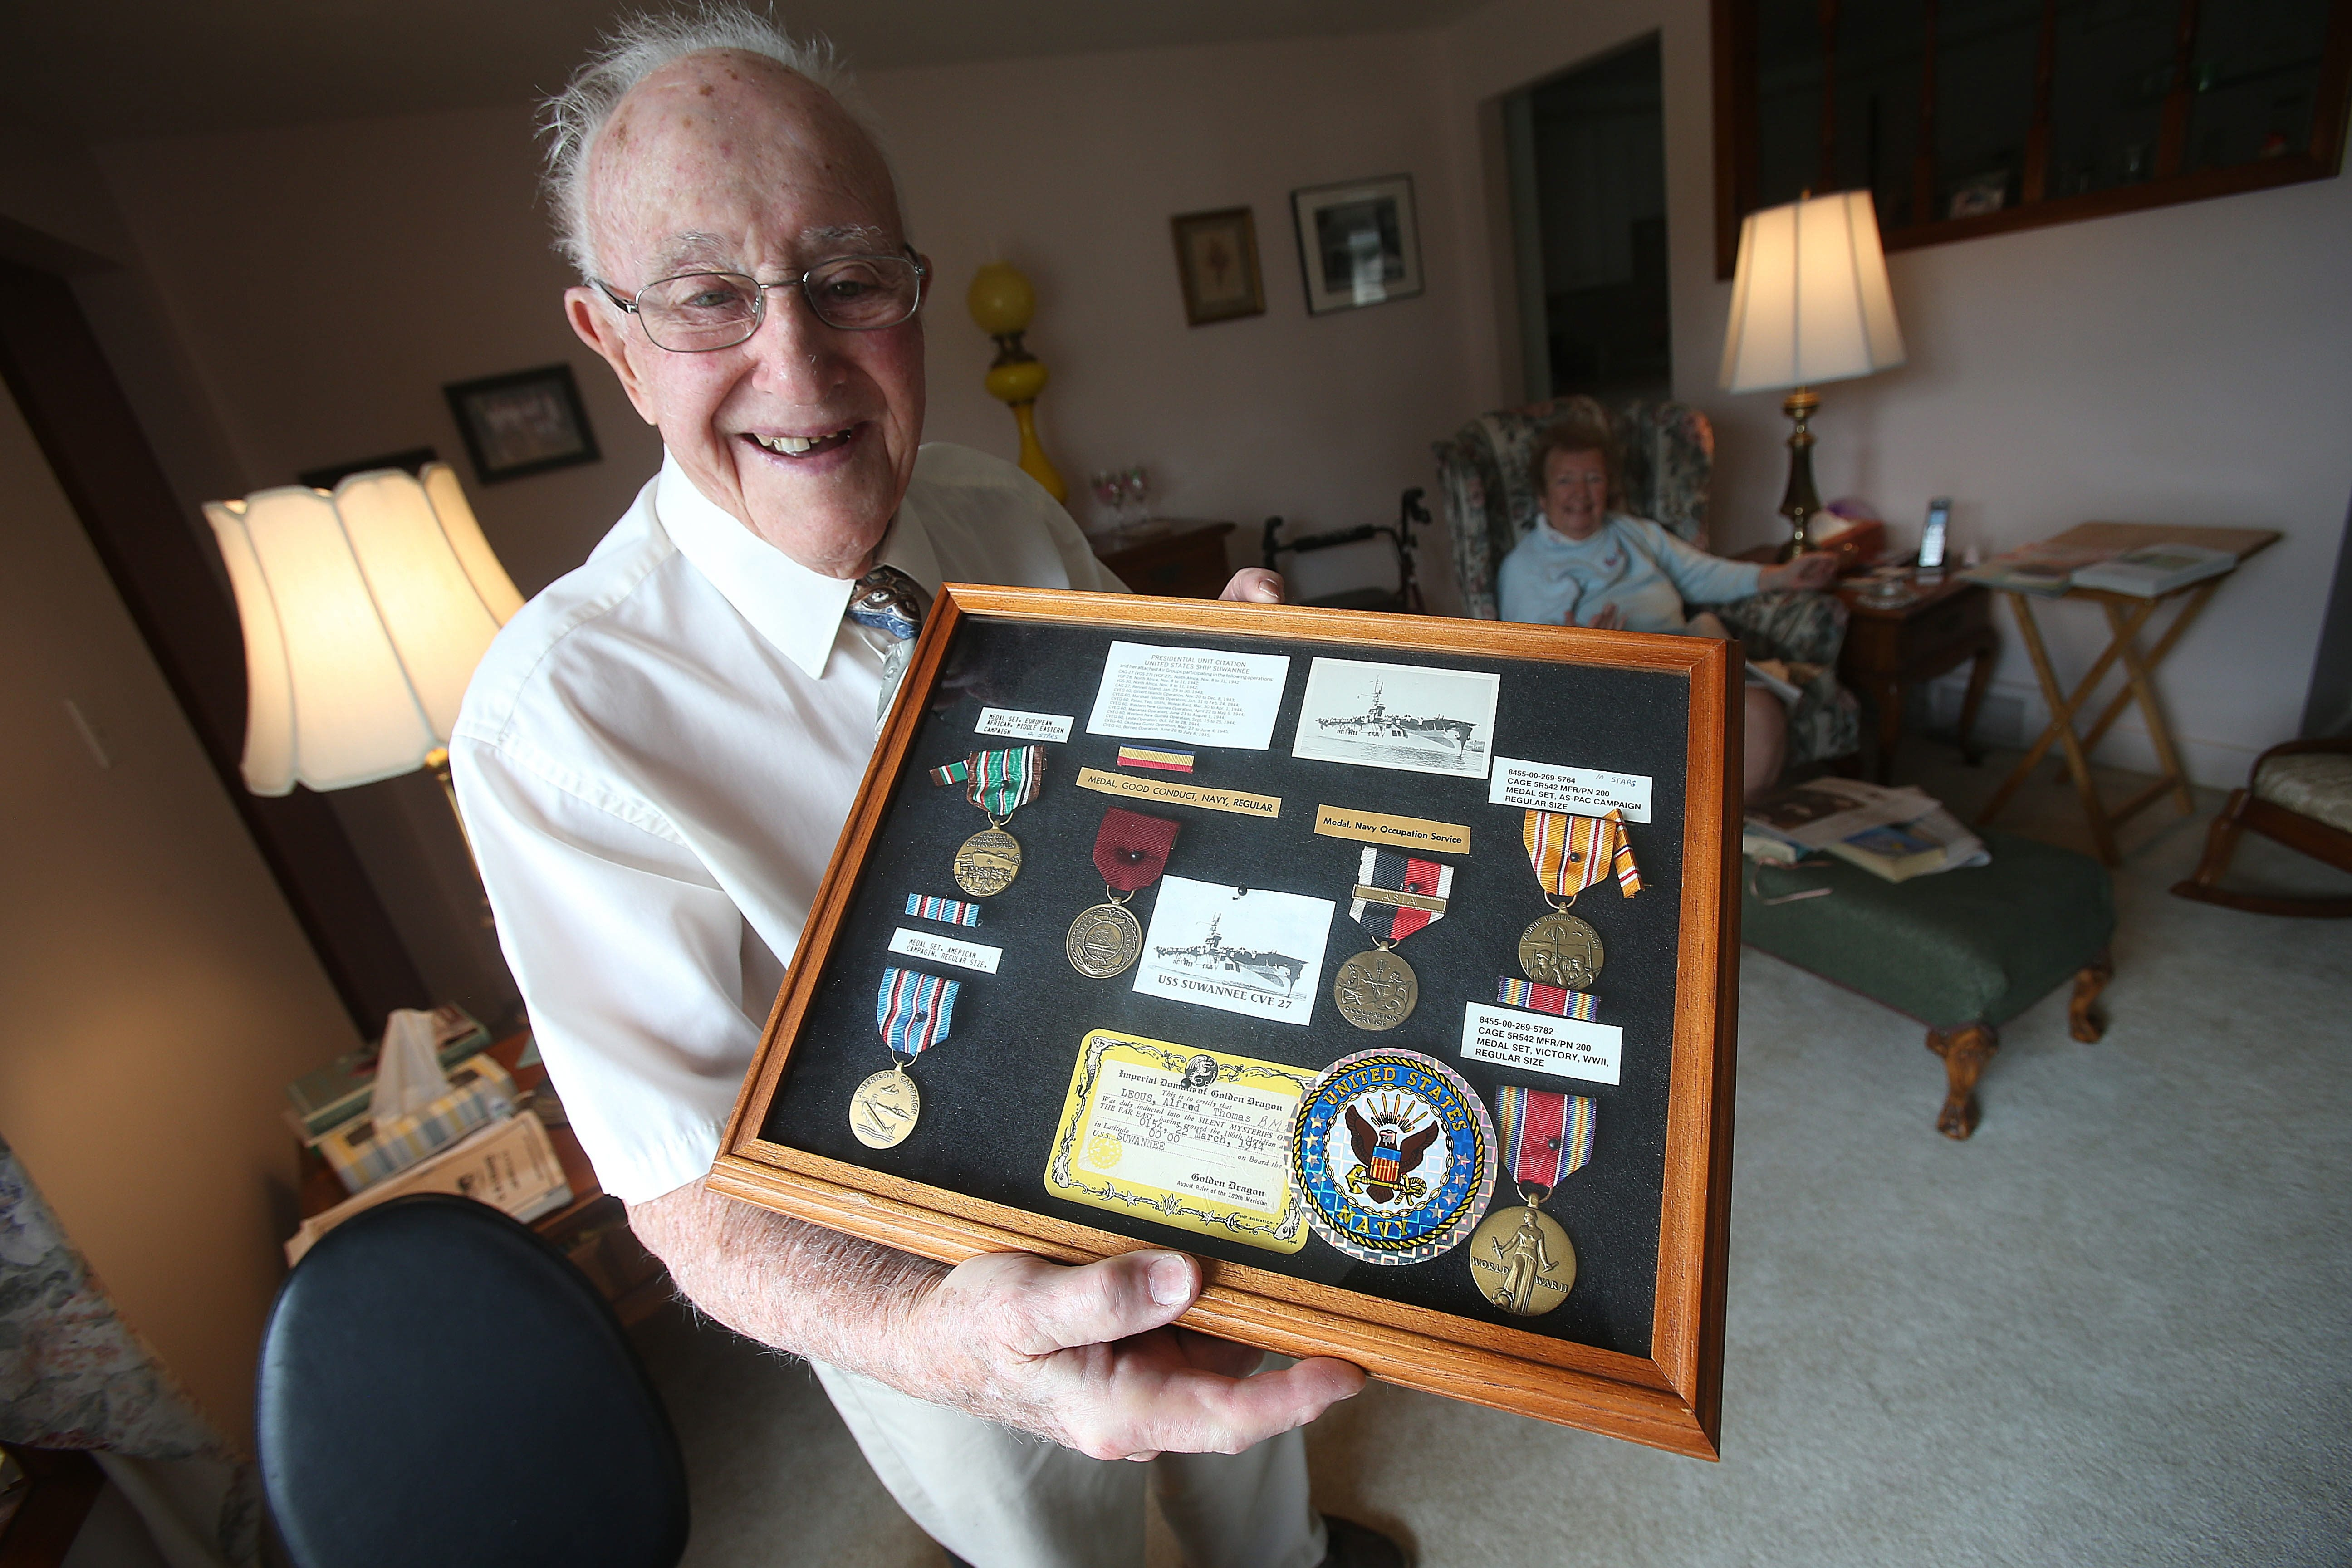 """Alfred Leous displays medals from service that included being attacked by kamikazes: """"We lost a lot of guys. It was terrible."""""""